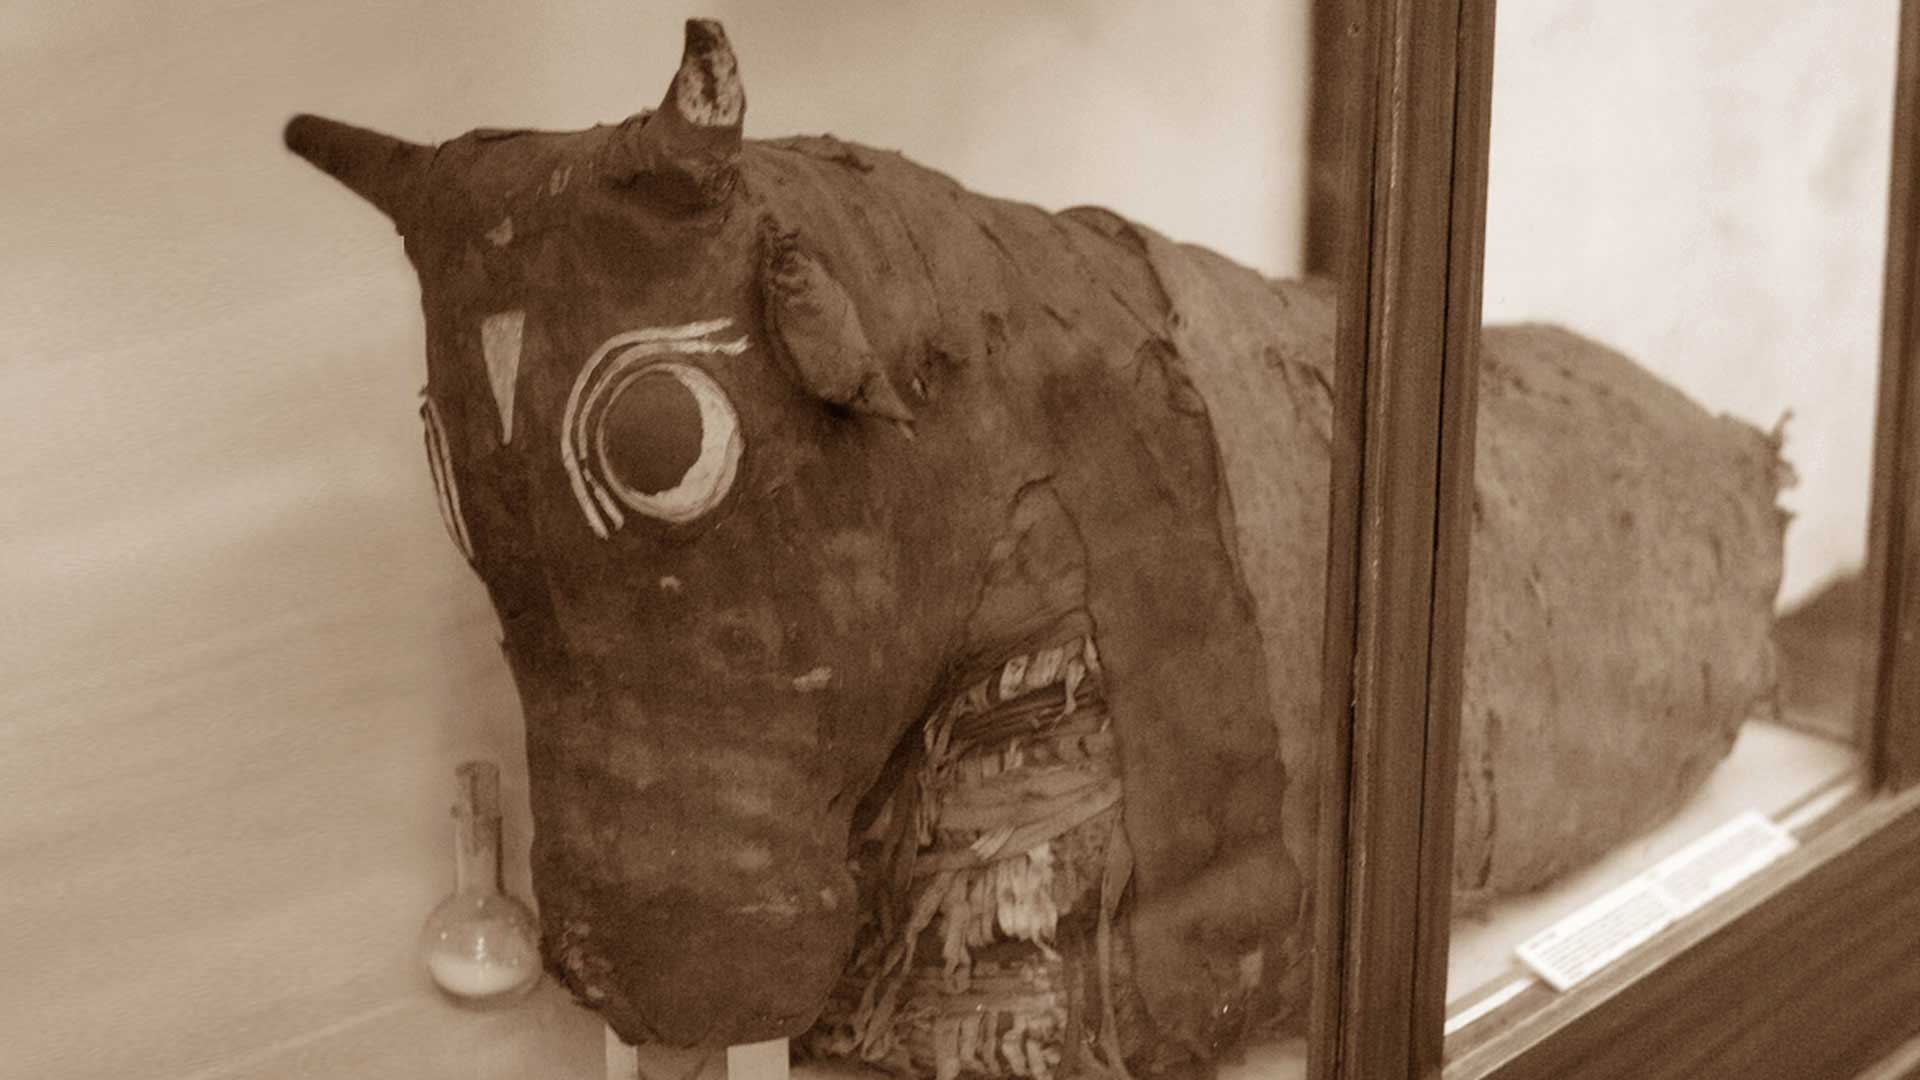 Such almost 1.7 metre long bull mummies packages are said to have been buried in the giant sarcophagi